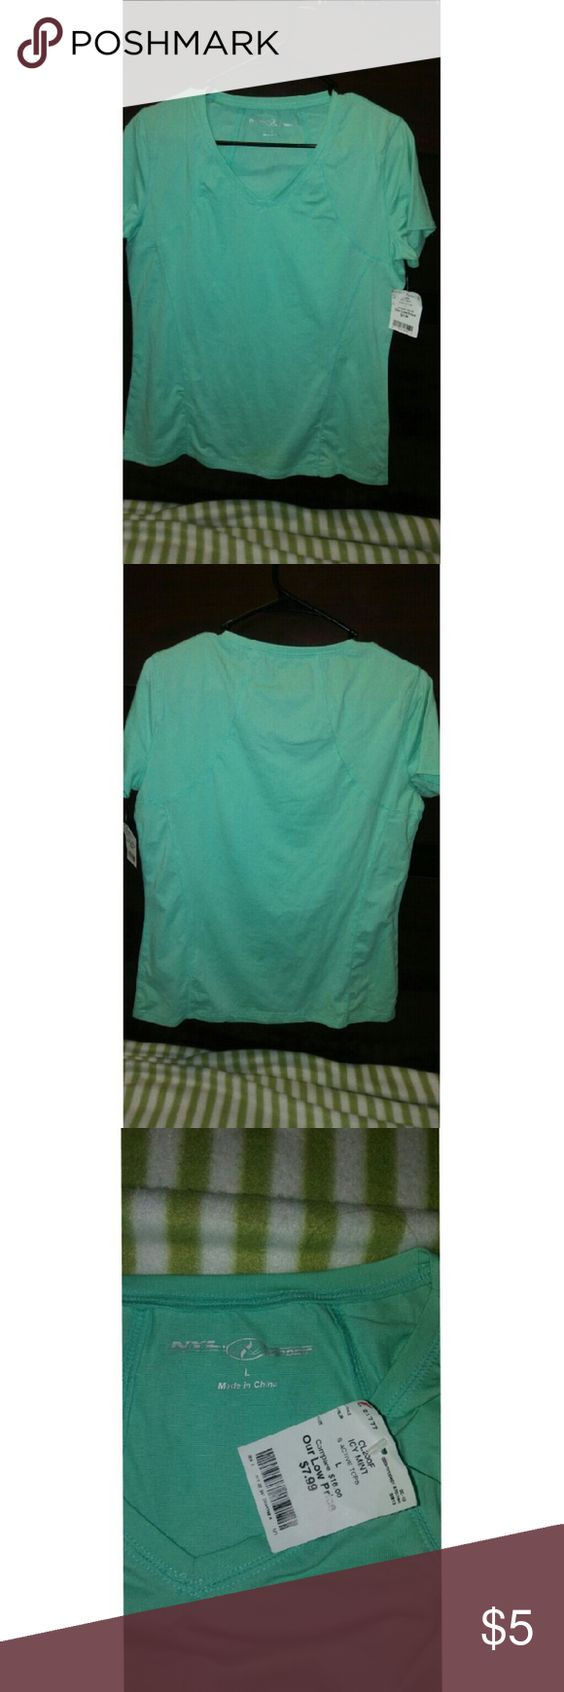 Workout shirt This is an icy mint workout shirt that I have never worn. Really stretches No stains! Smoke and pet free! Tops Tees - Short Sleeve